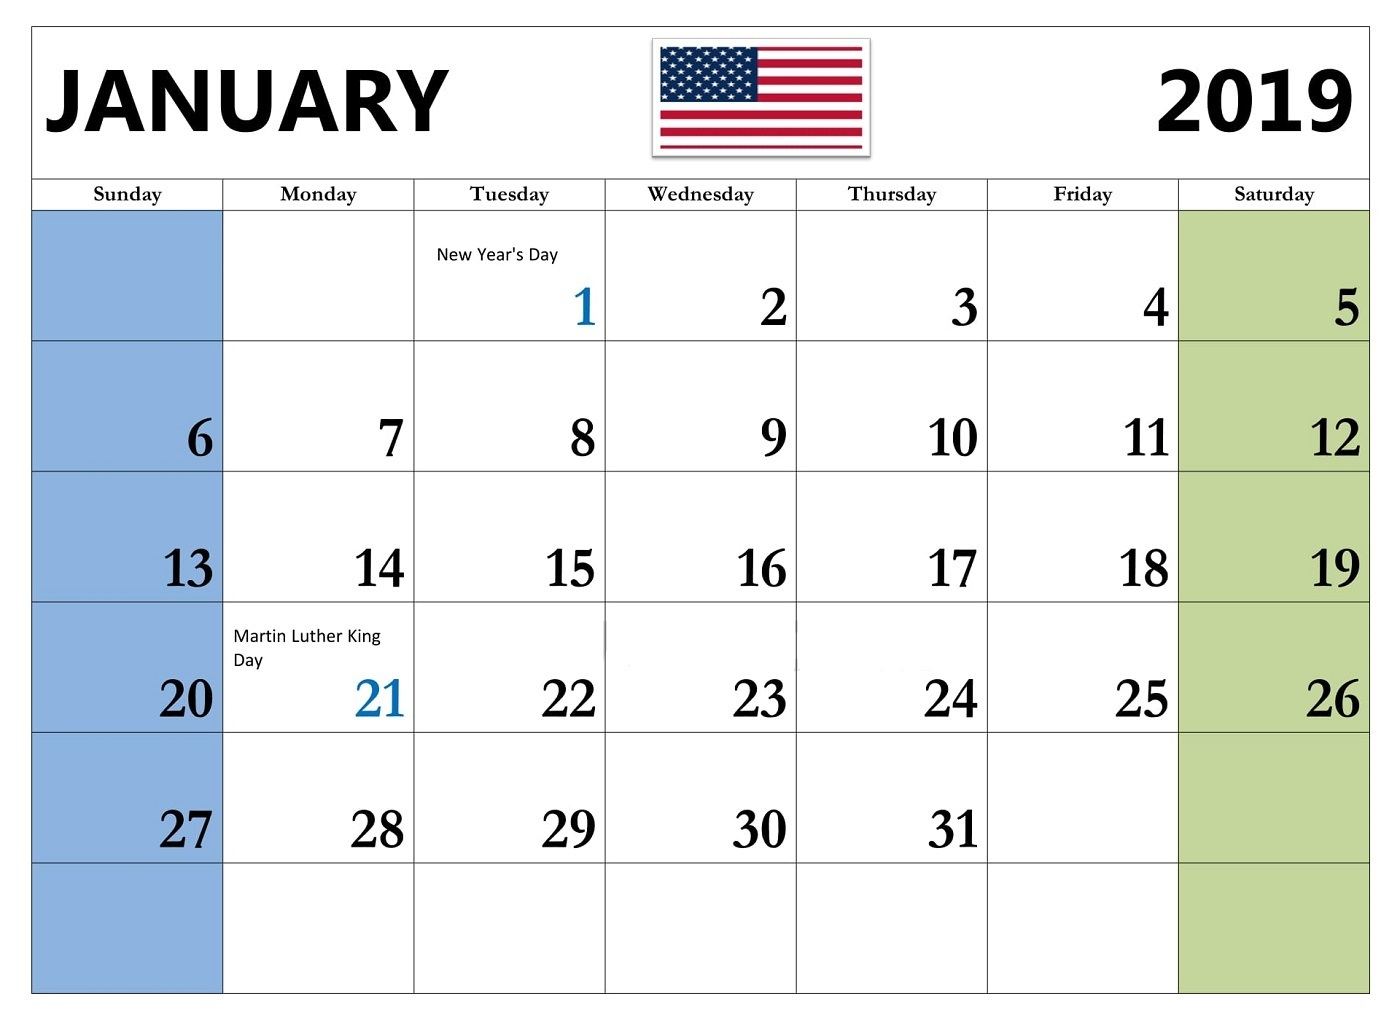 January 2019 Calendar with Holidays USA